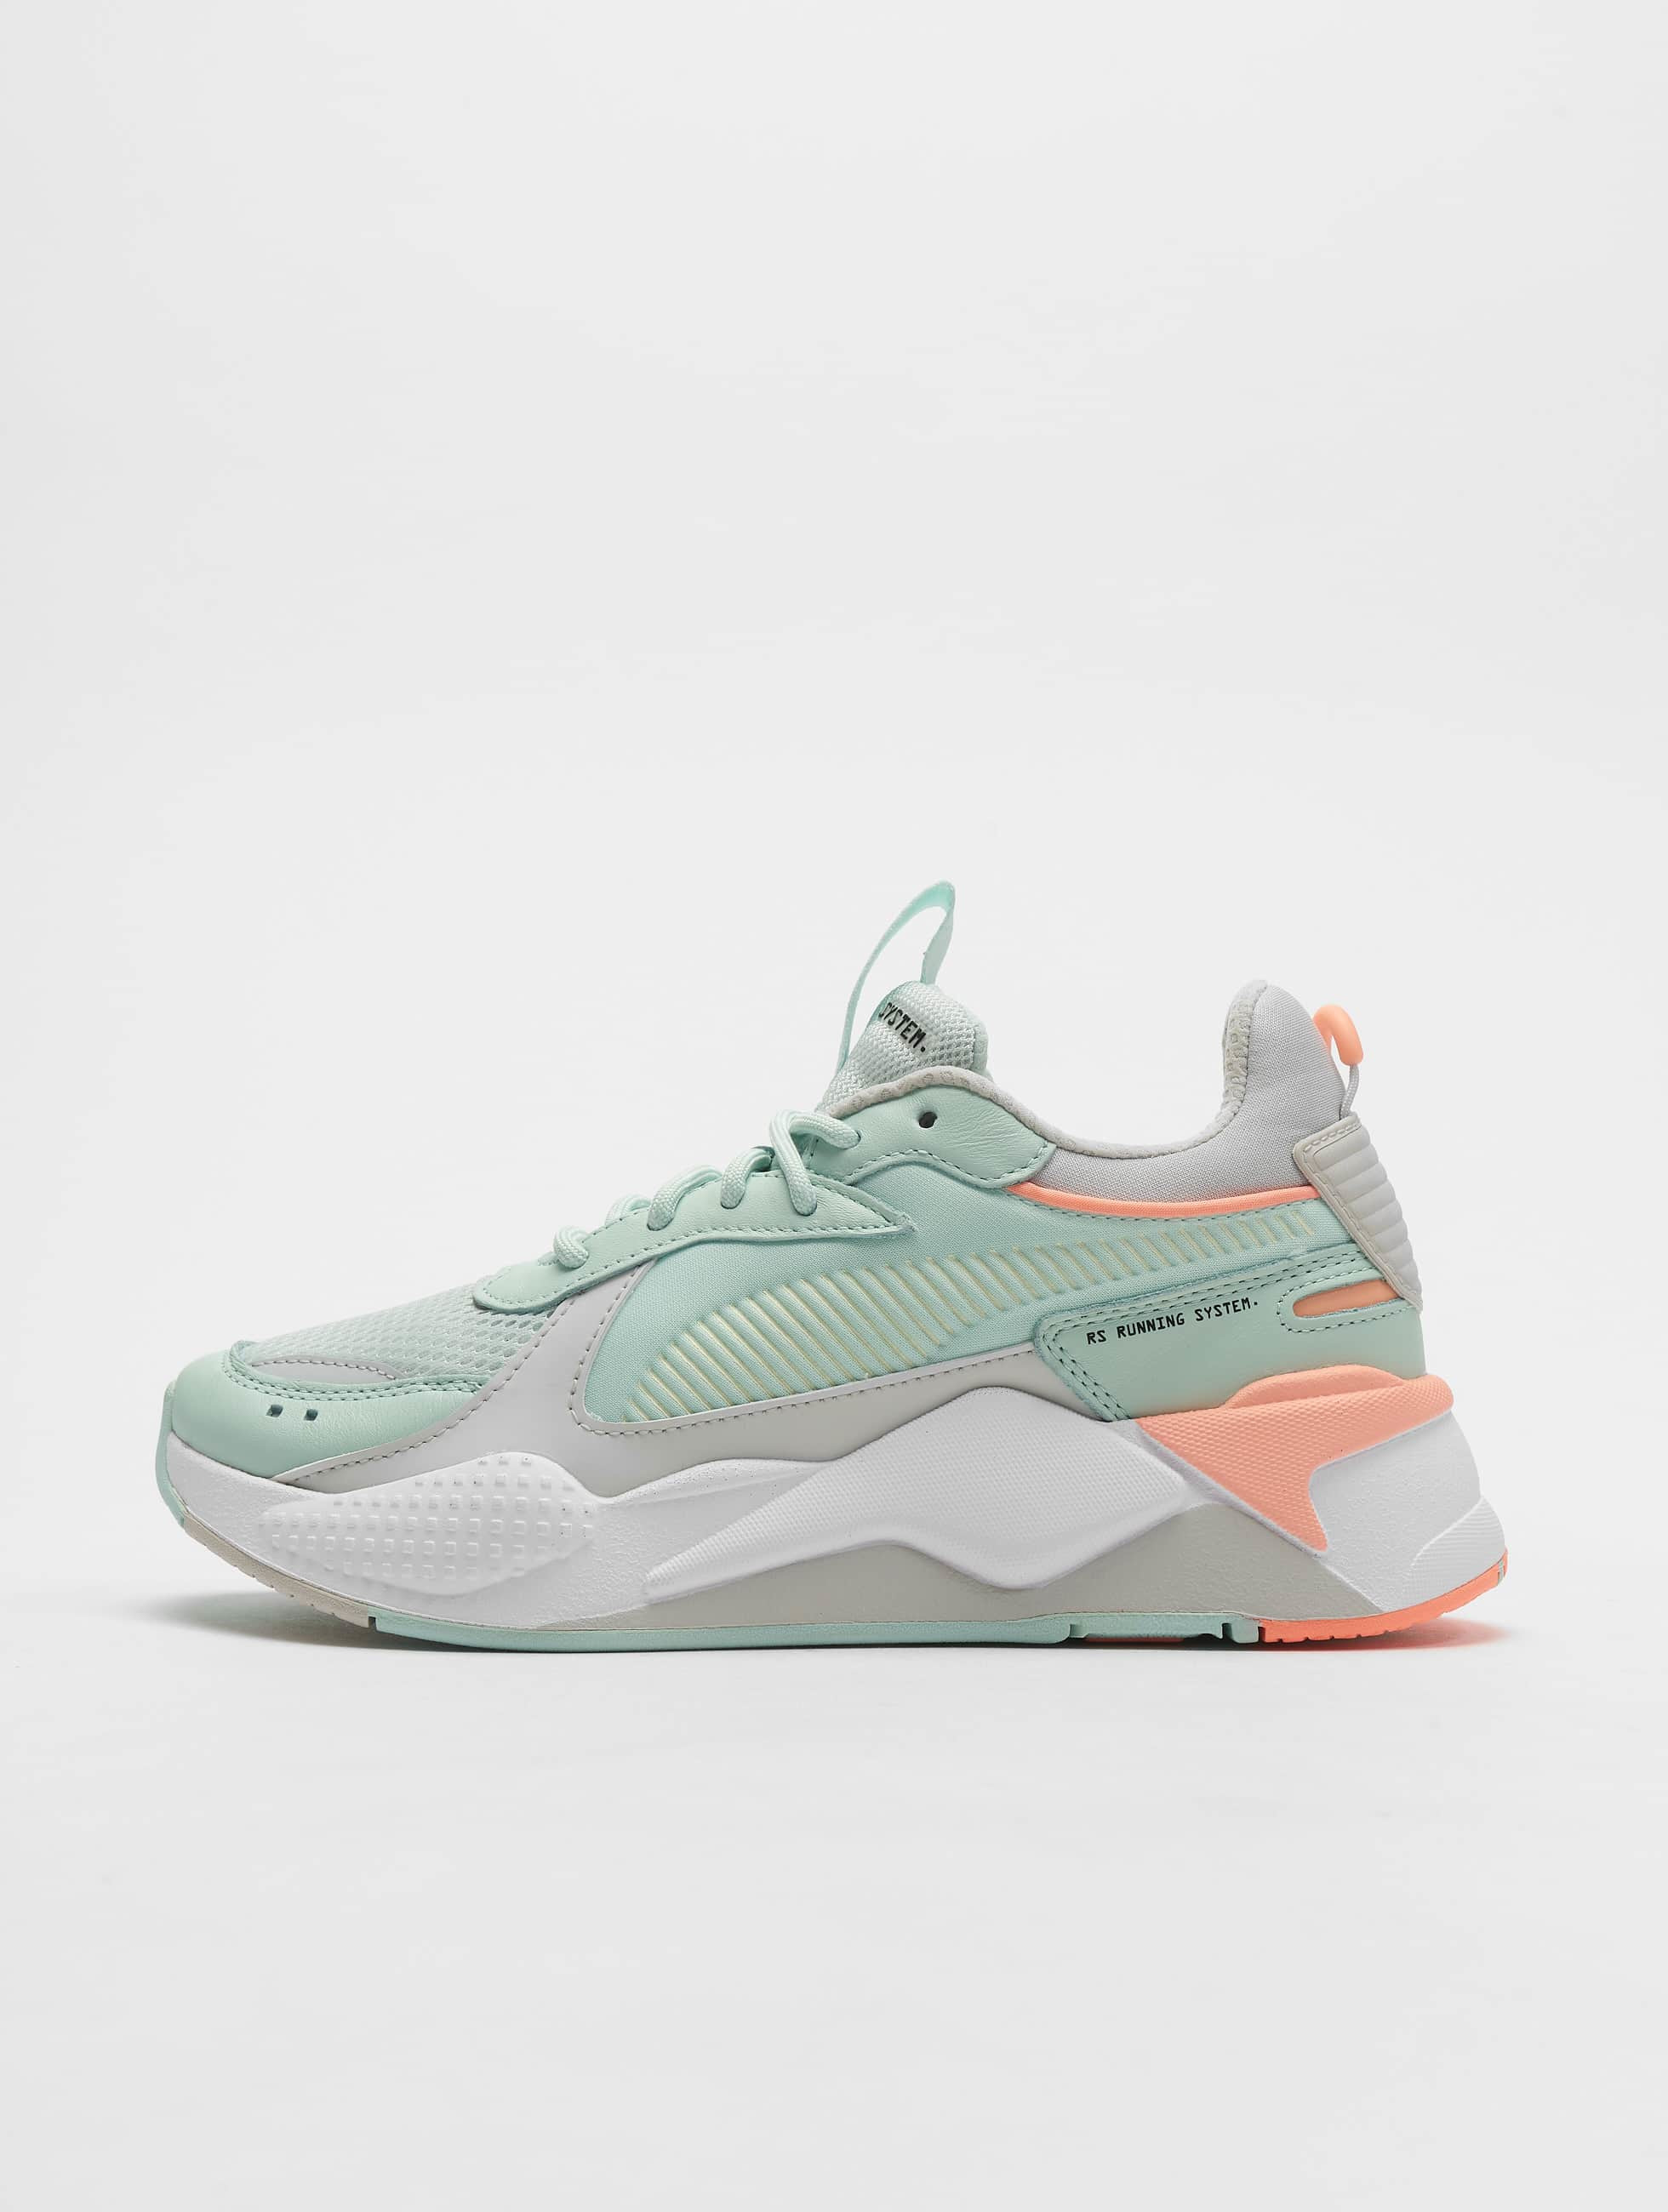 4acf48ab199 Puma schoen / sneaker Rs-X Tracks in turquois 652778